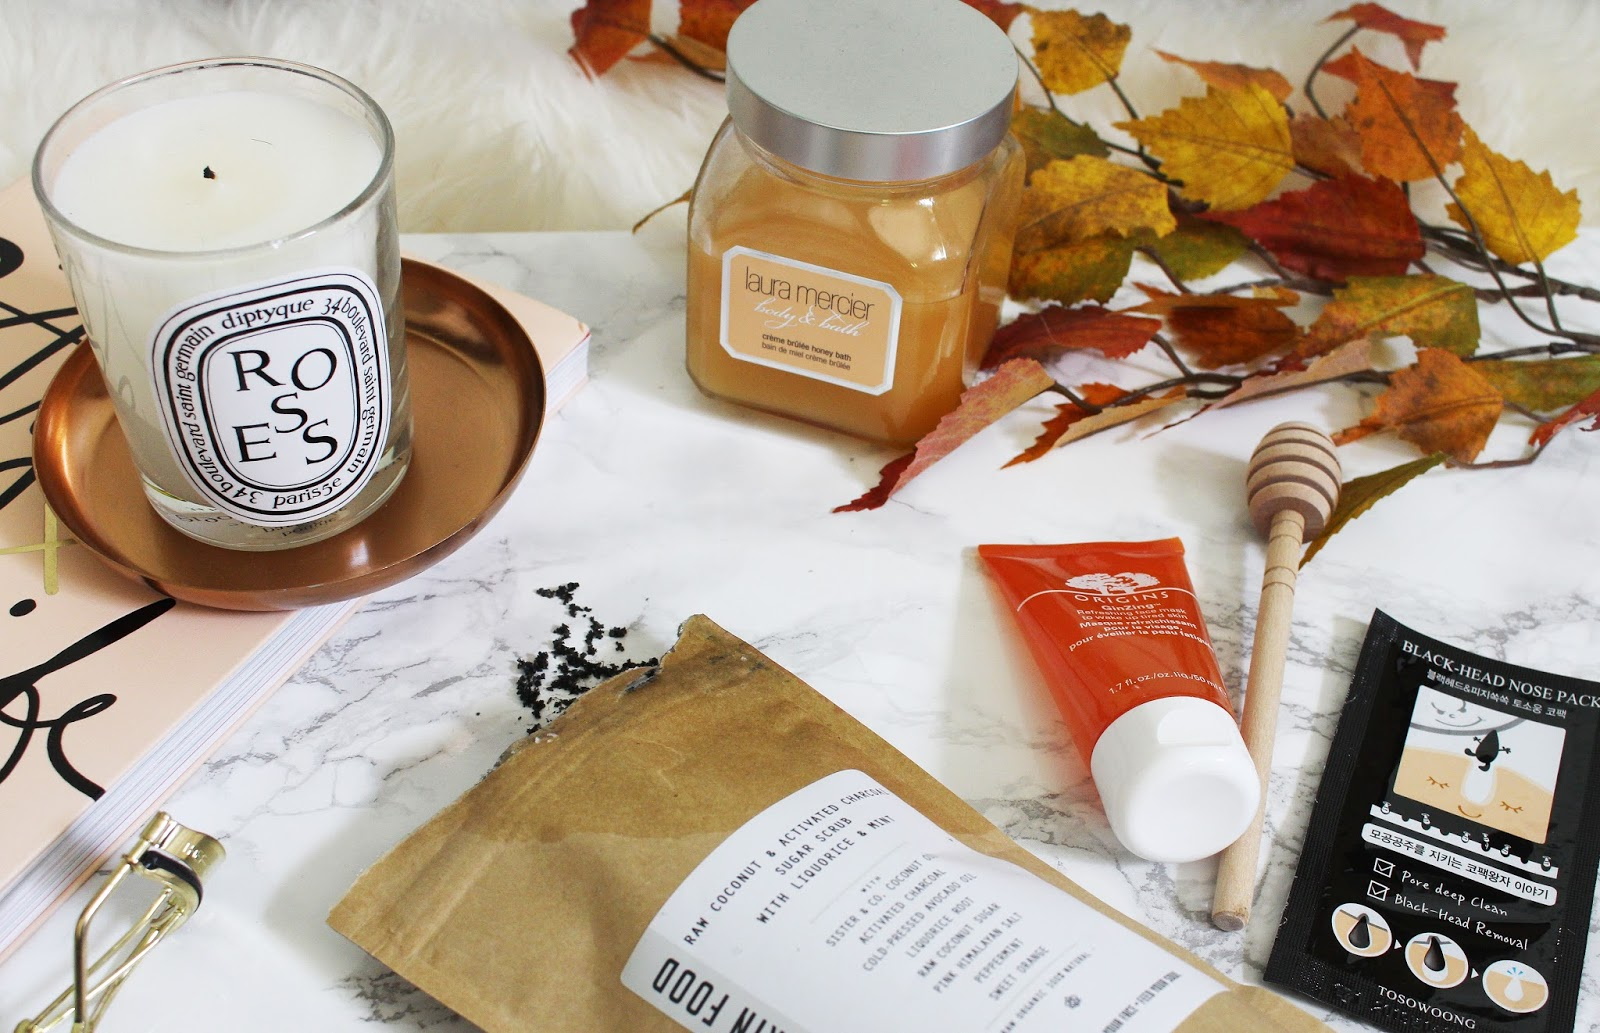 pamper evening, autumn night in, sister and co scrub, fall beauty, autumn beauty, origins ginzing, blackead remover, diptyque roses, laura mercier bath and body creme brûlée,